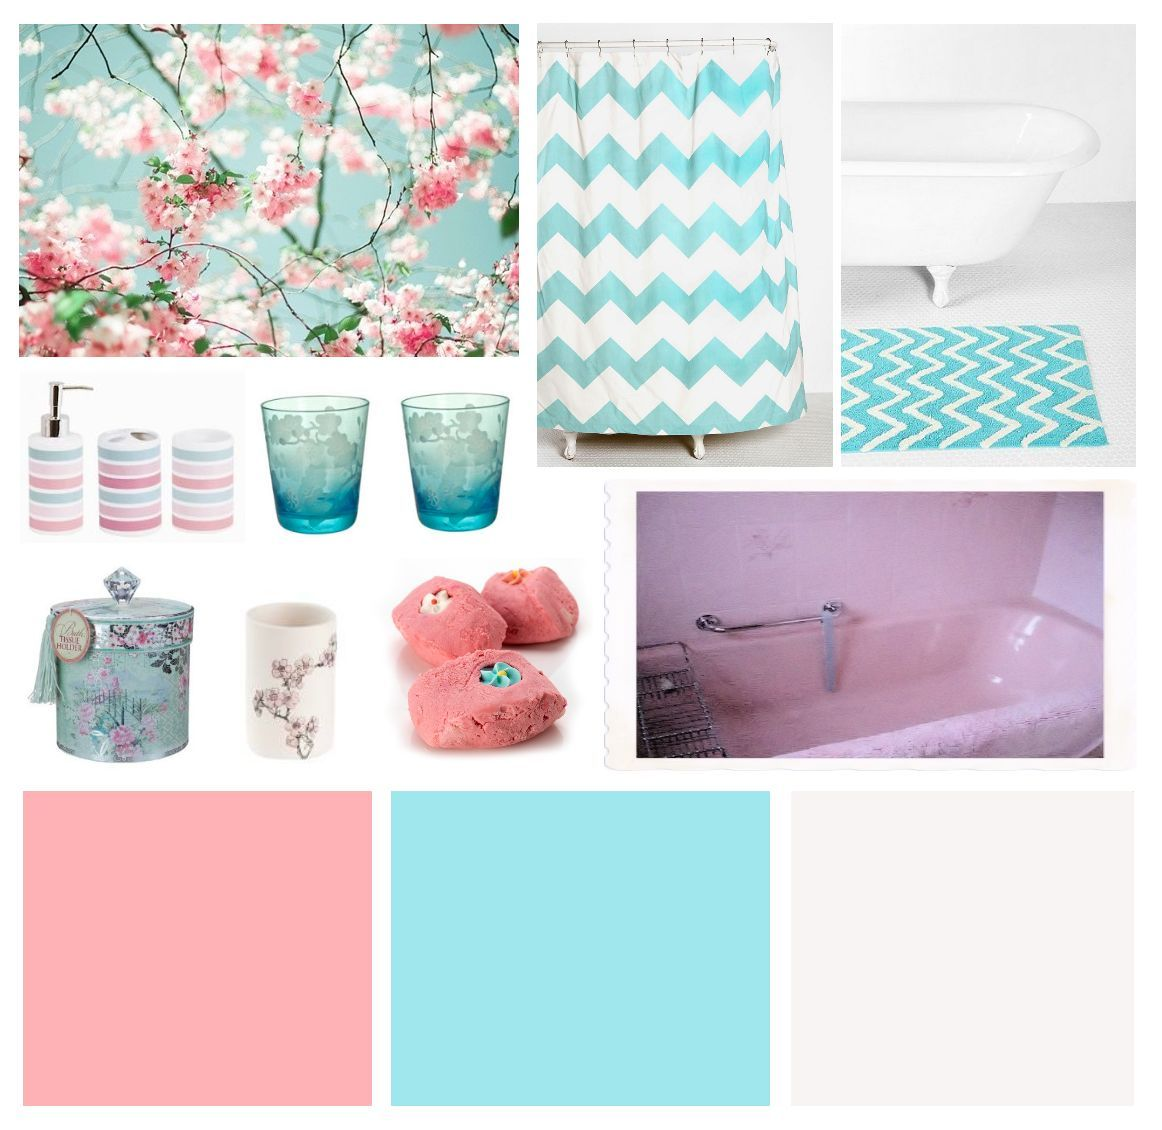 Pink bathroom suite - Colour Scheme For A Pink Bathroom Suite How To Modernize And Accessorize